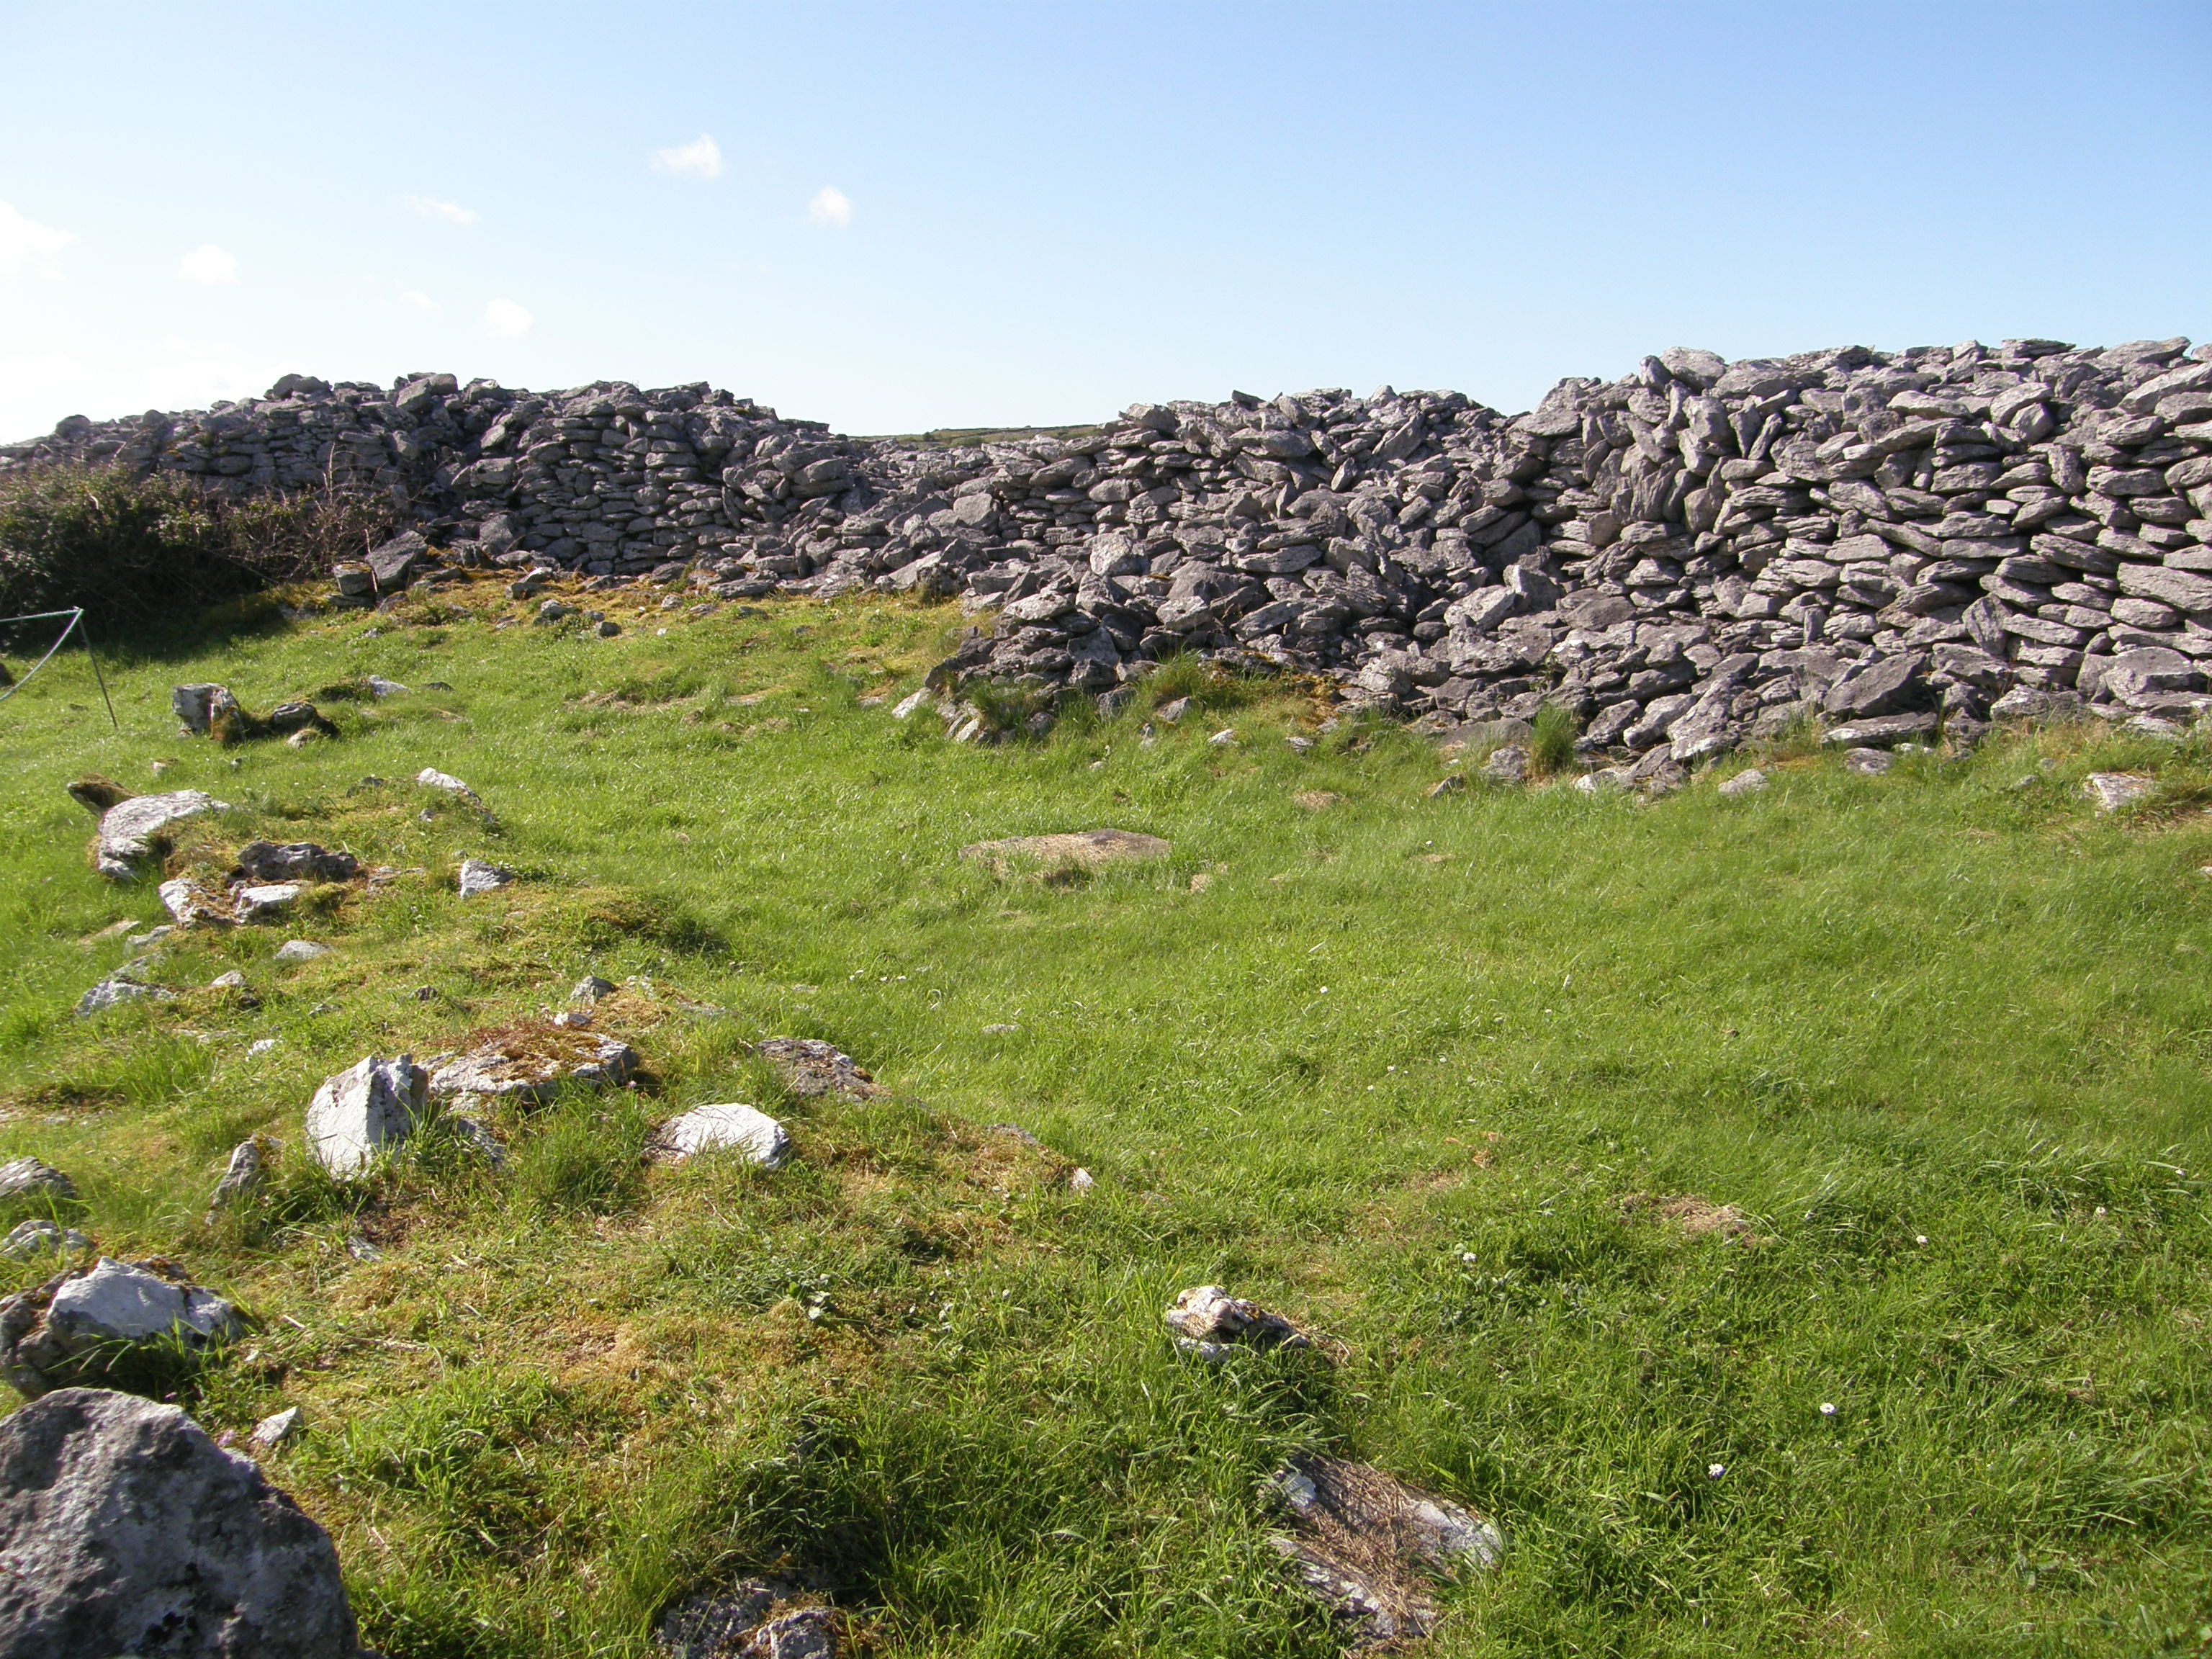 Interior of the Caherconnell Ring Fort with Remains of Dividing Wall